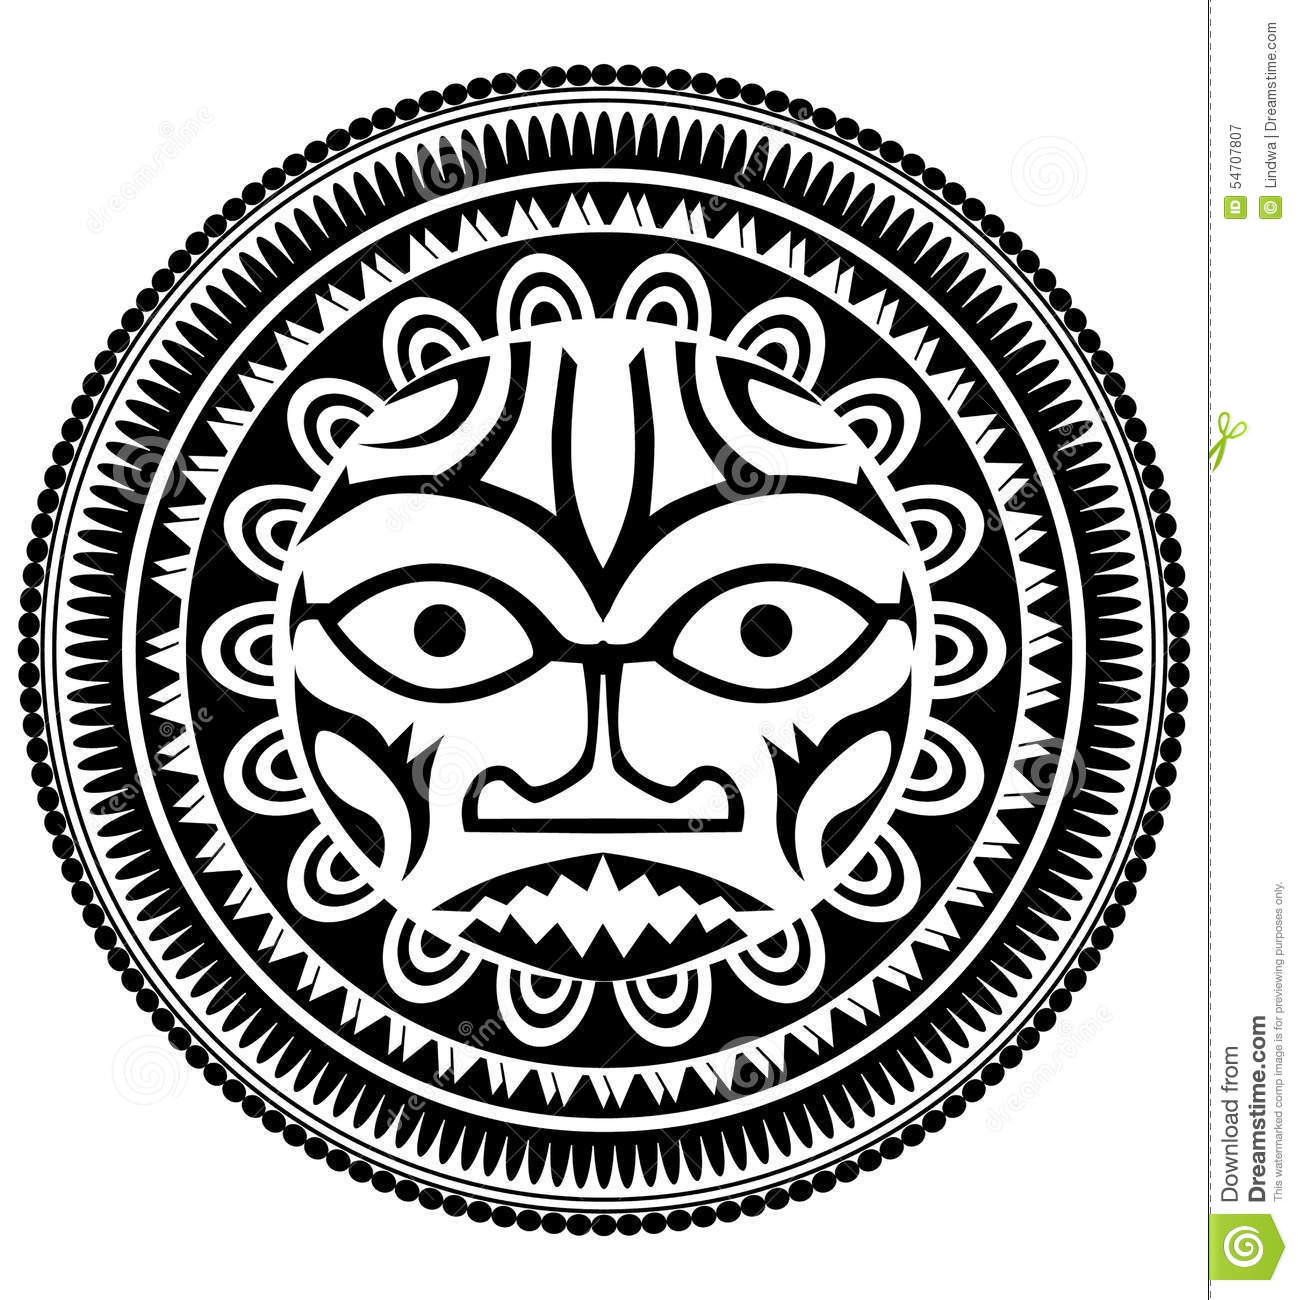 Polynesian tattoo stock vector. Illustration of hawaii - 54707807